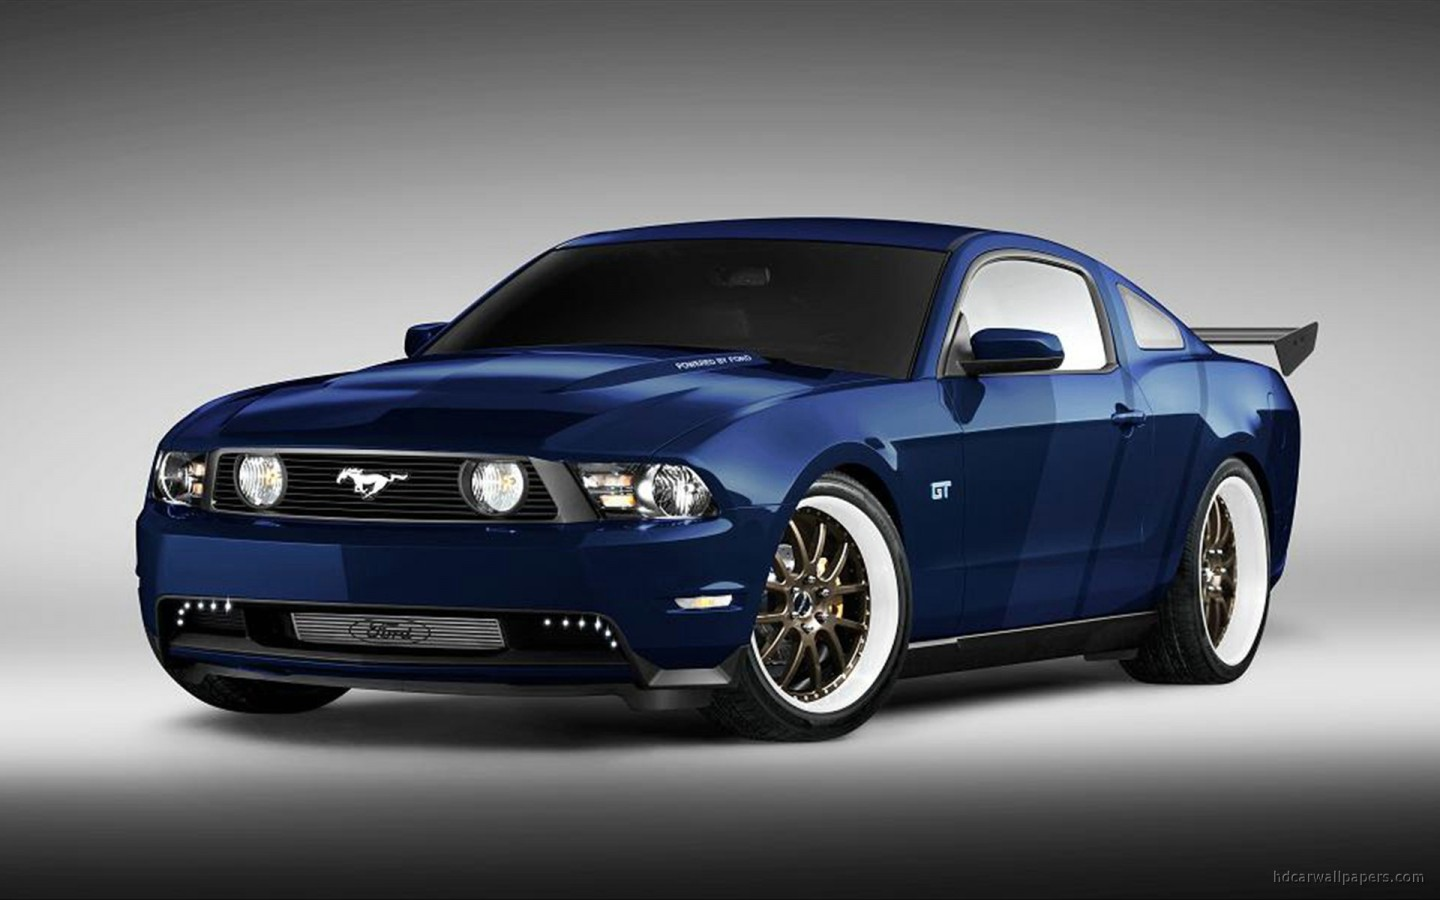 2010 ford mustang at sema 2009 wallpaper hd car wallpapers id 687. Black Bedroom Furniture Sets. Home Design Ideas